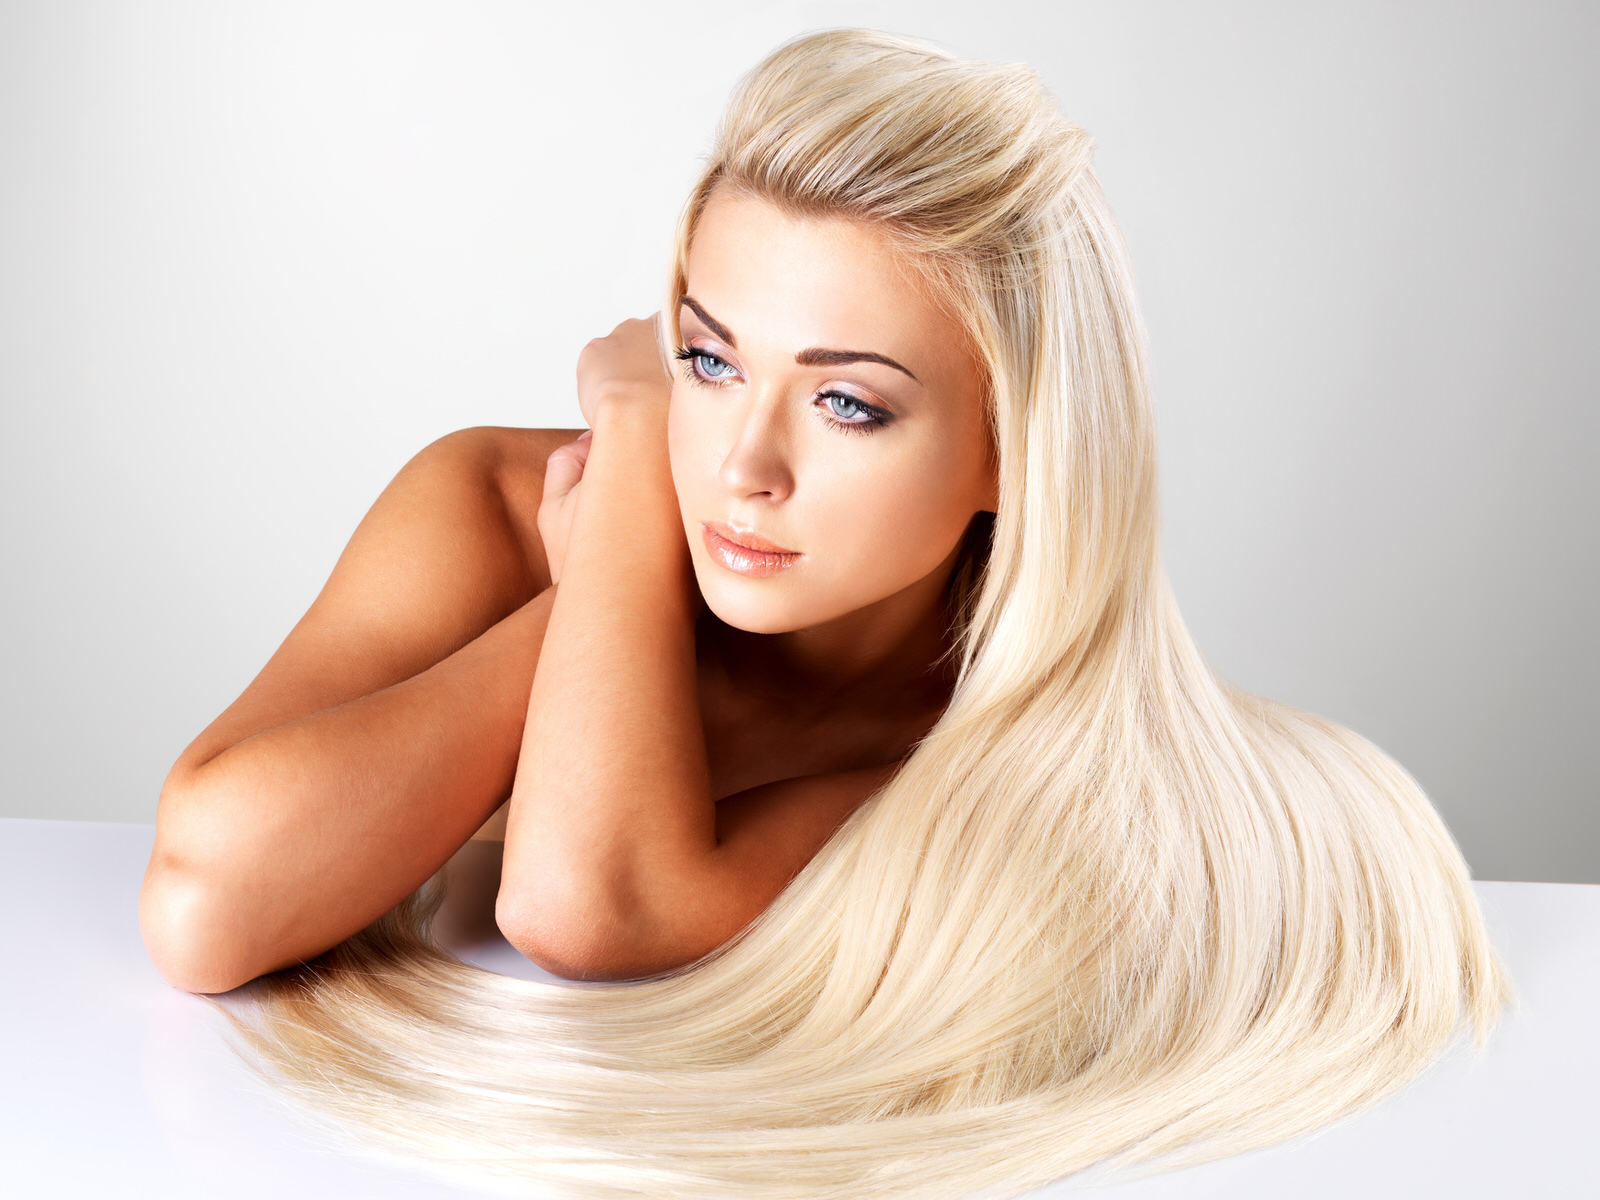 A girl with long blonde hair